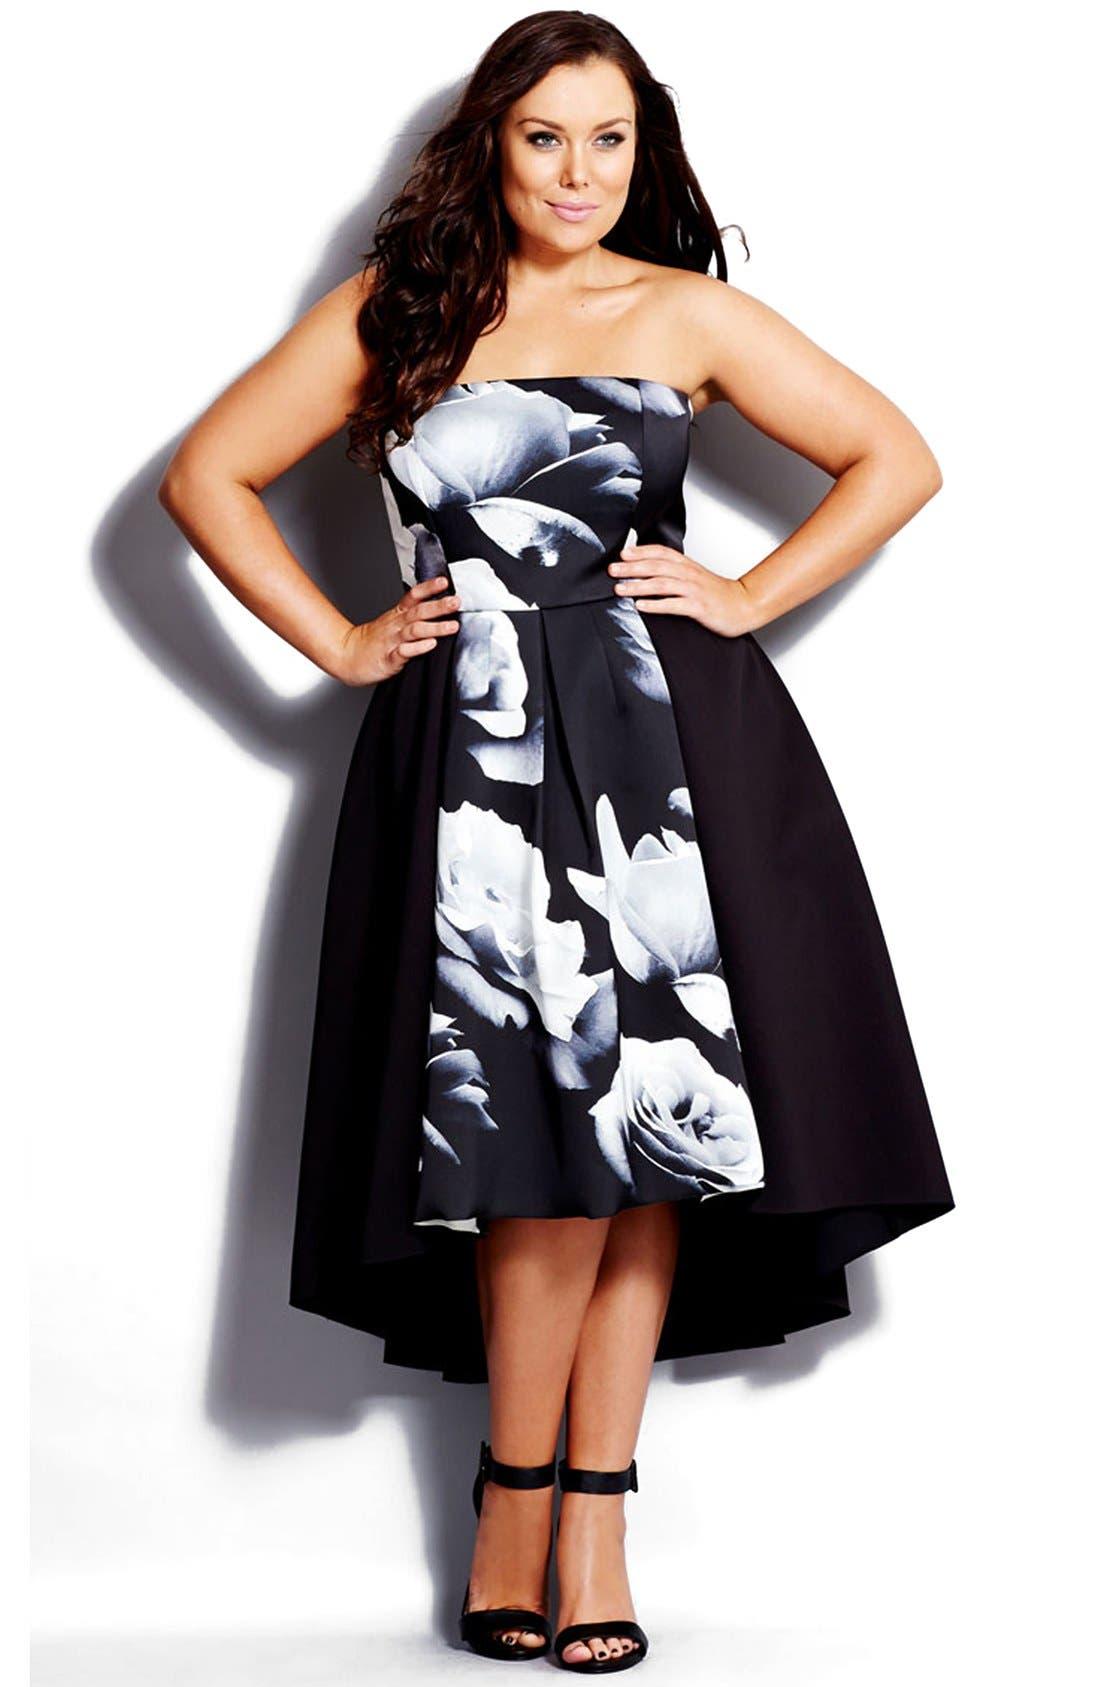 Alternate Image 1 Selected - City Chic 'Blown Rose'Print Block Strapless High/Low Dress (Plus Size)